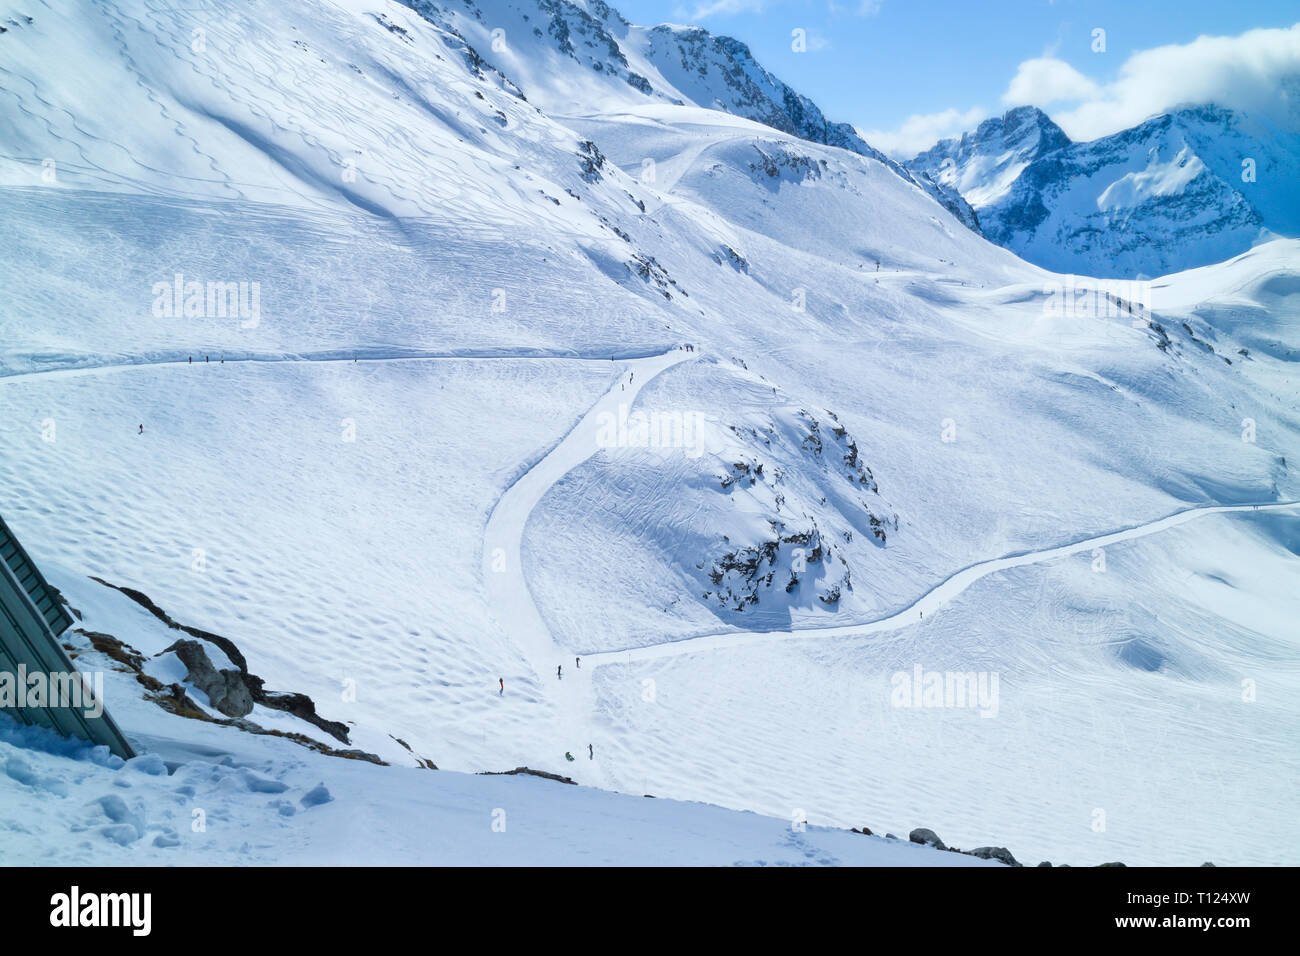 Snowy skiing slopes in French Alps , winter sports scenery . - Stock Image